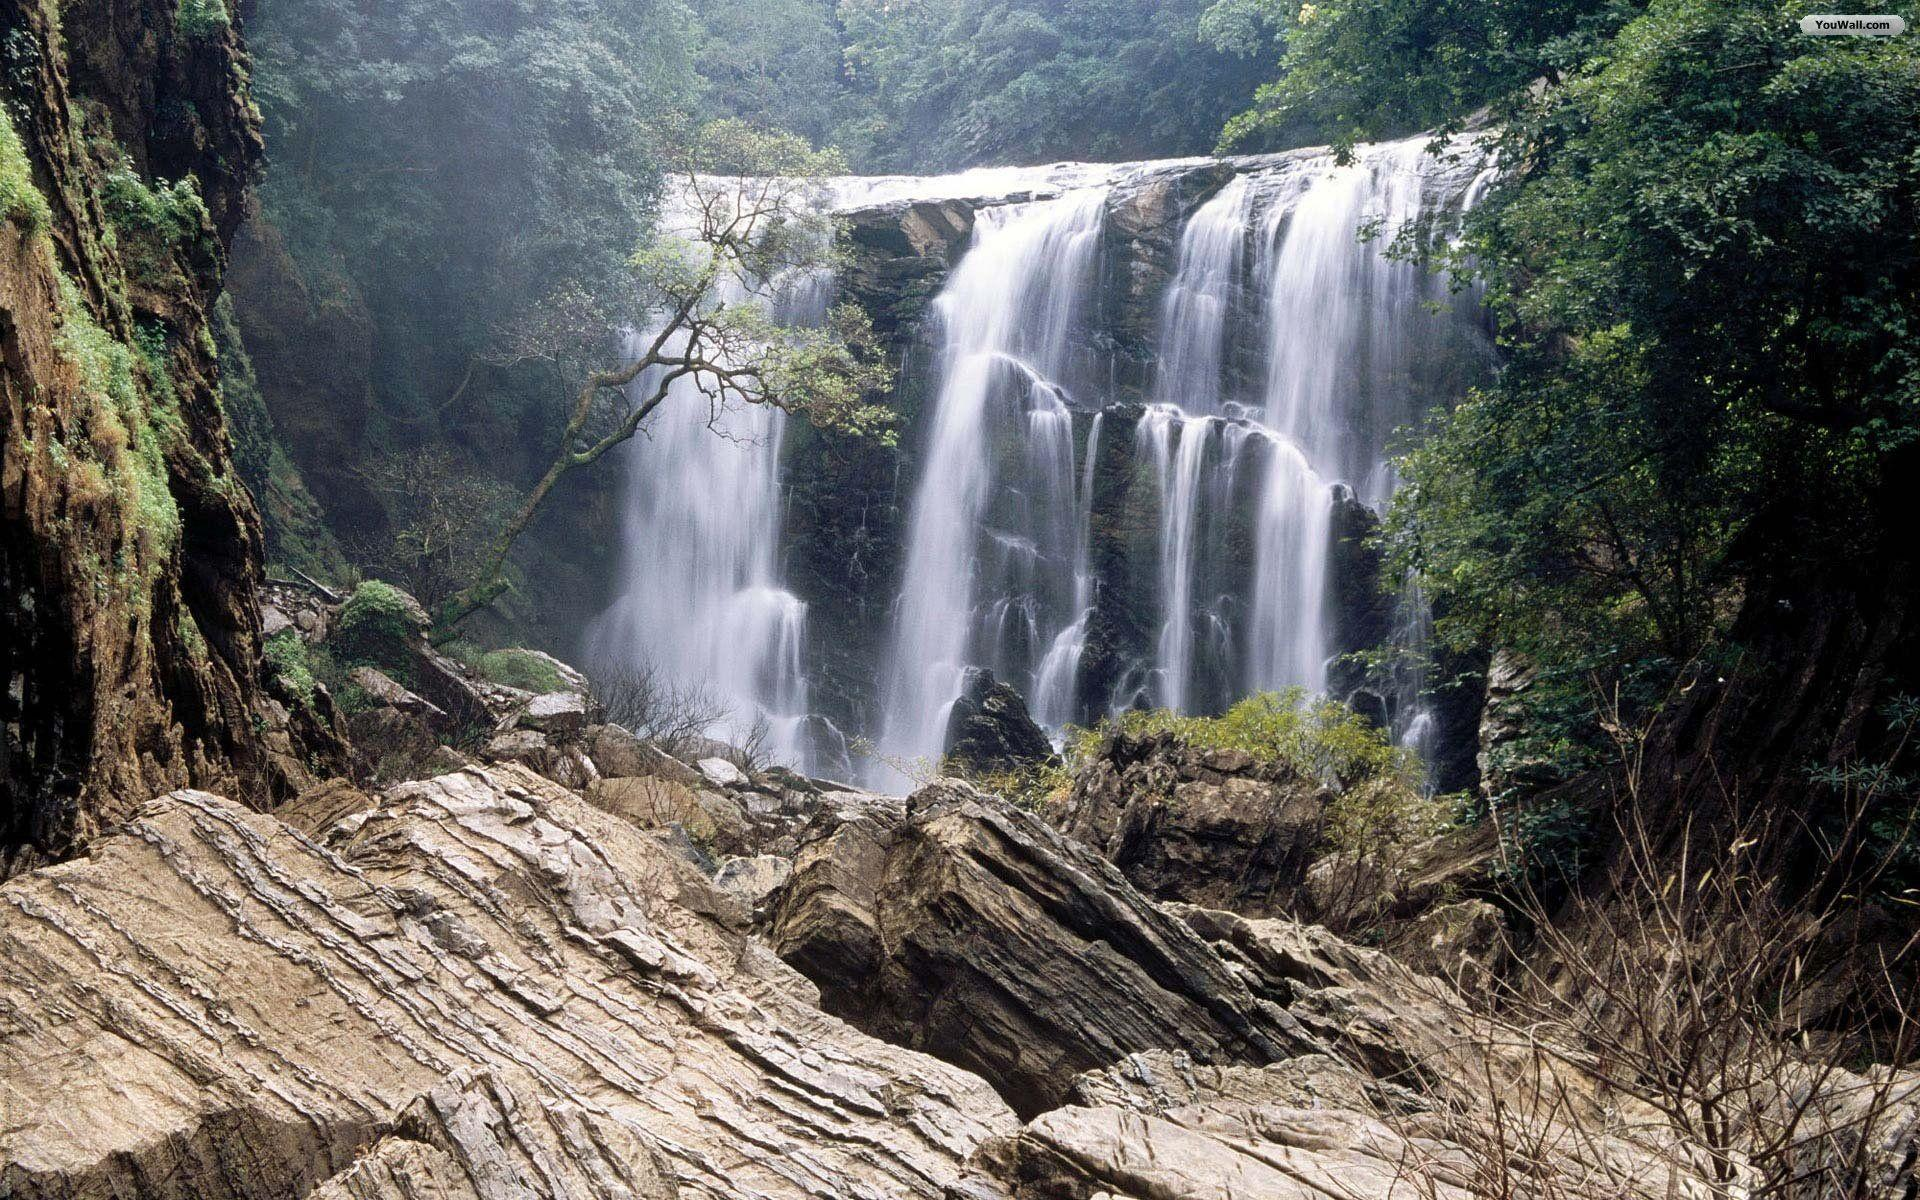 Forest waterfall wallpapers wallpaper cave - Waterfalls desktop wallpaper forest falls ...